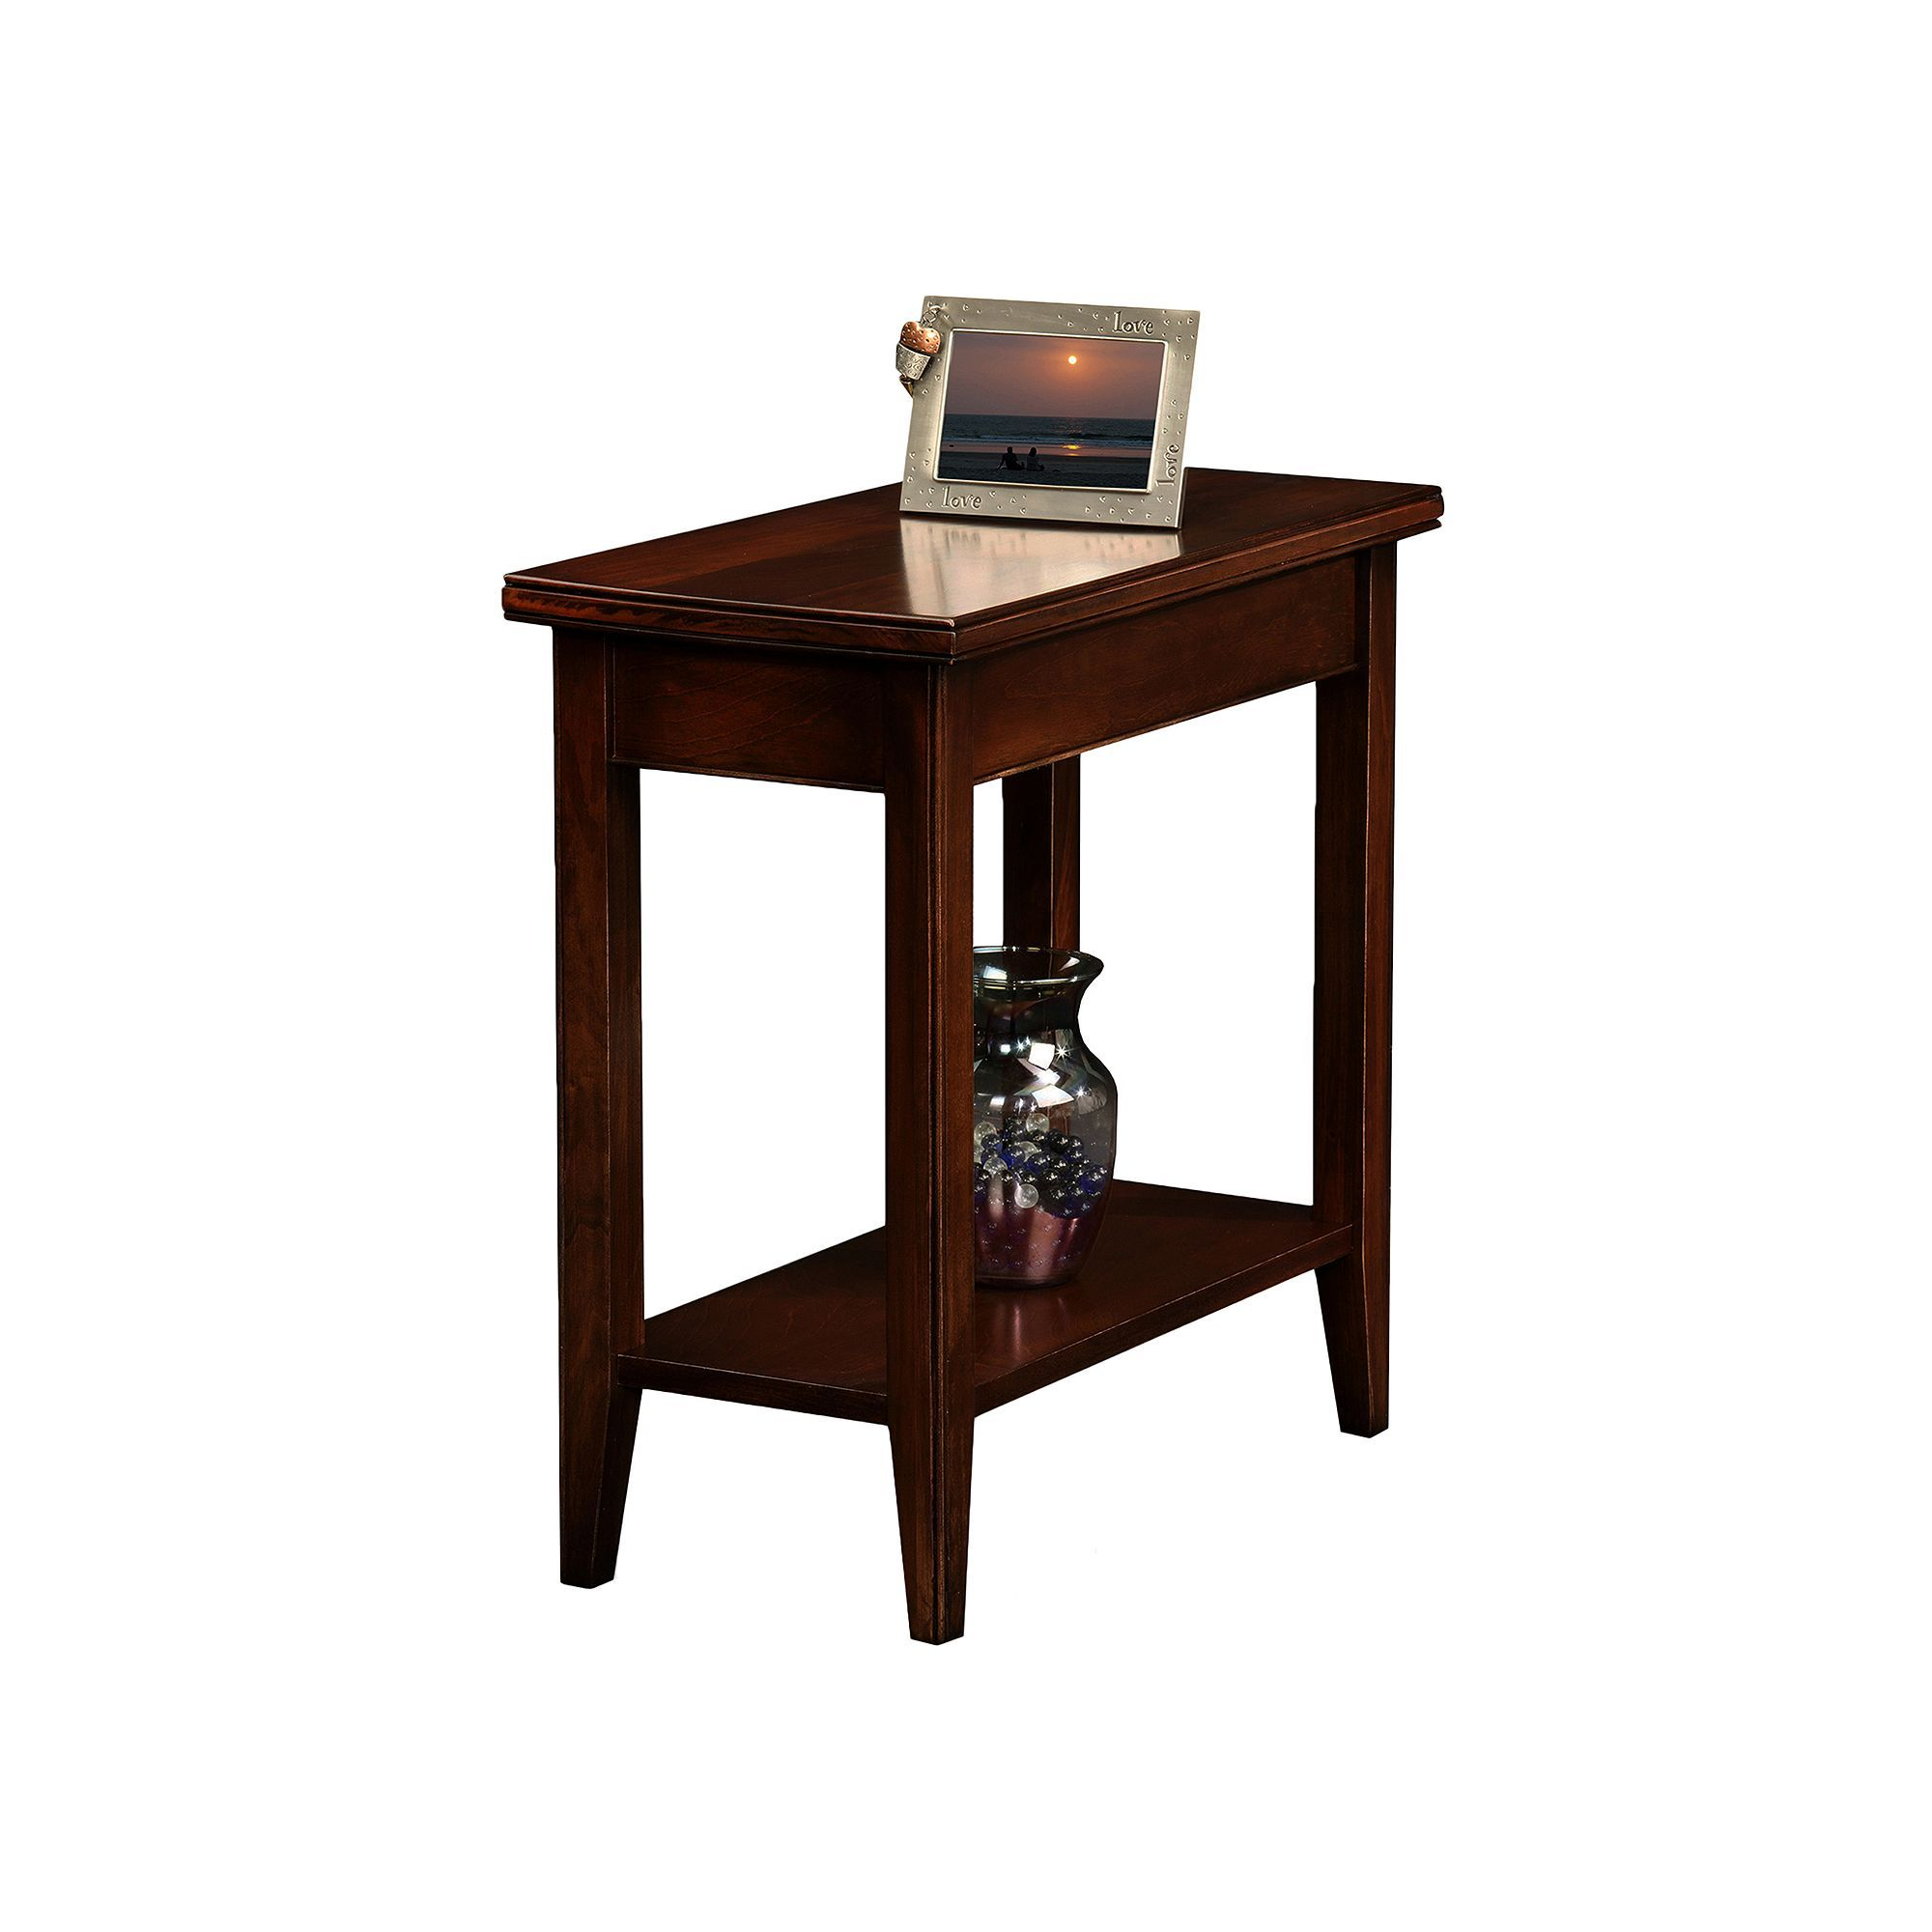 Leick Furniture Chocolate Cherry Finish Narrow End Table Other Clrs Chair Side Table End Tables End Tables With Storage